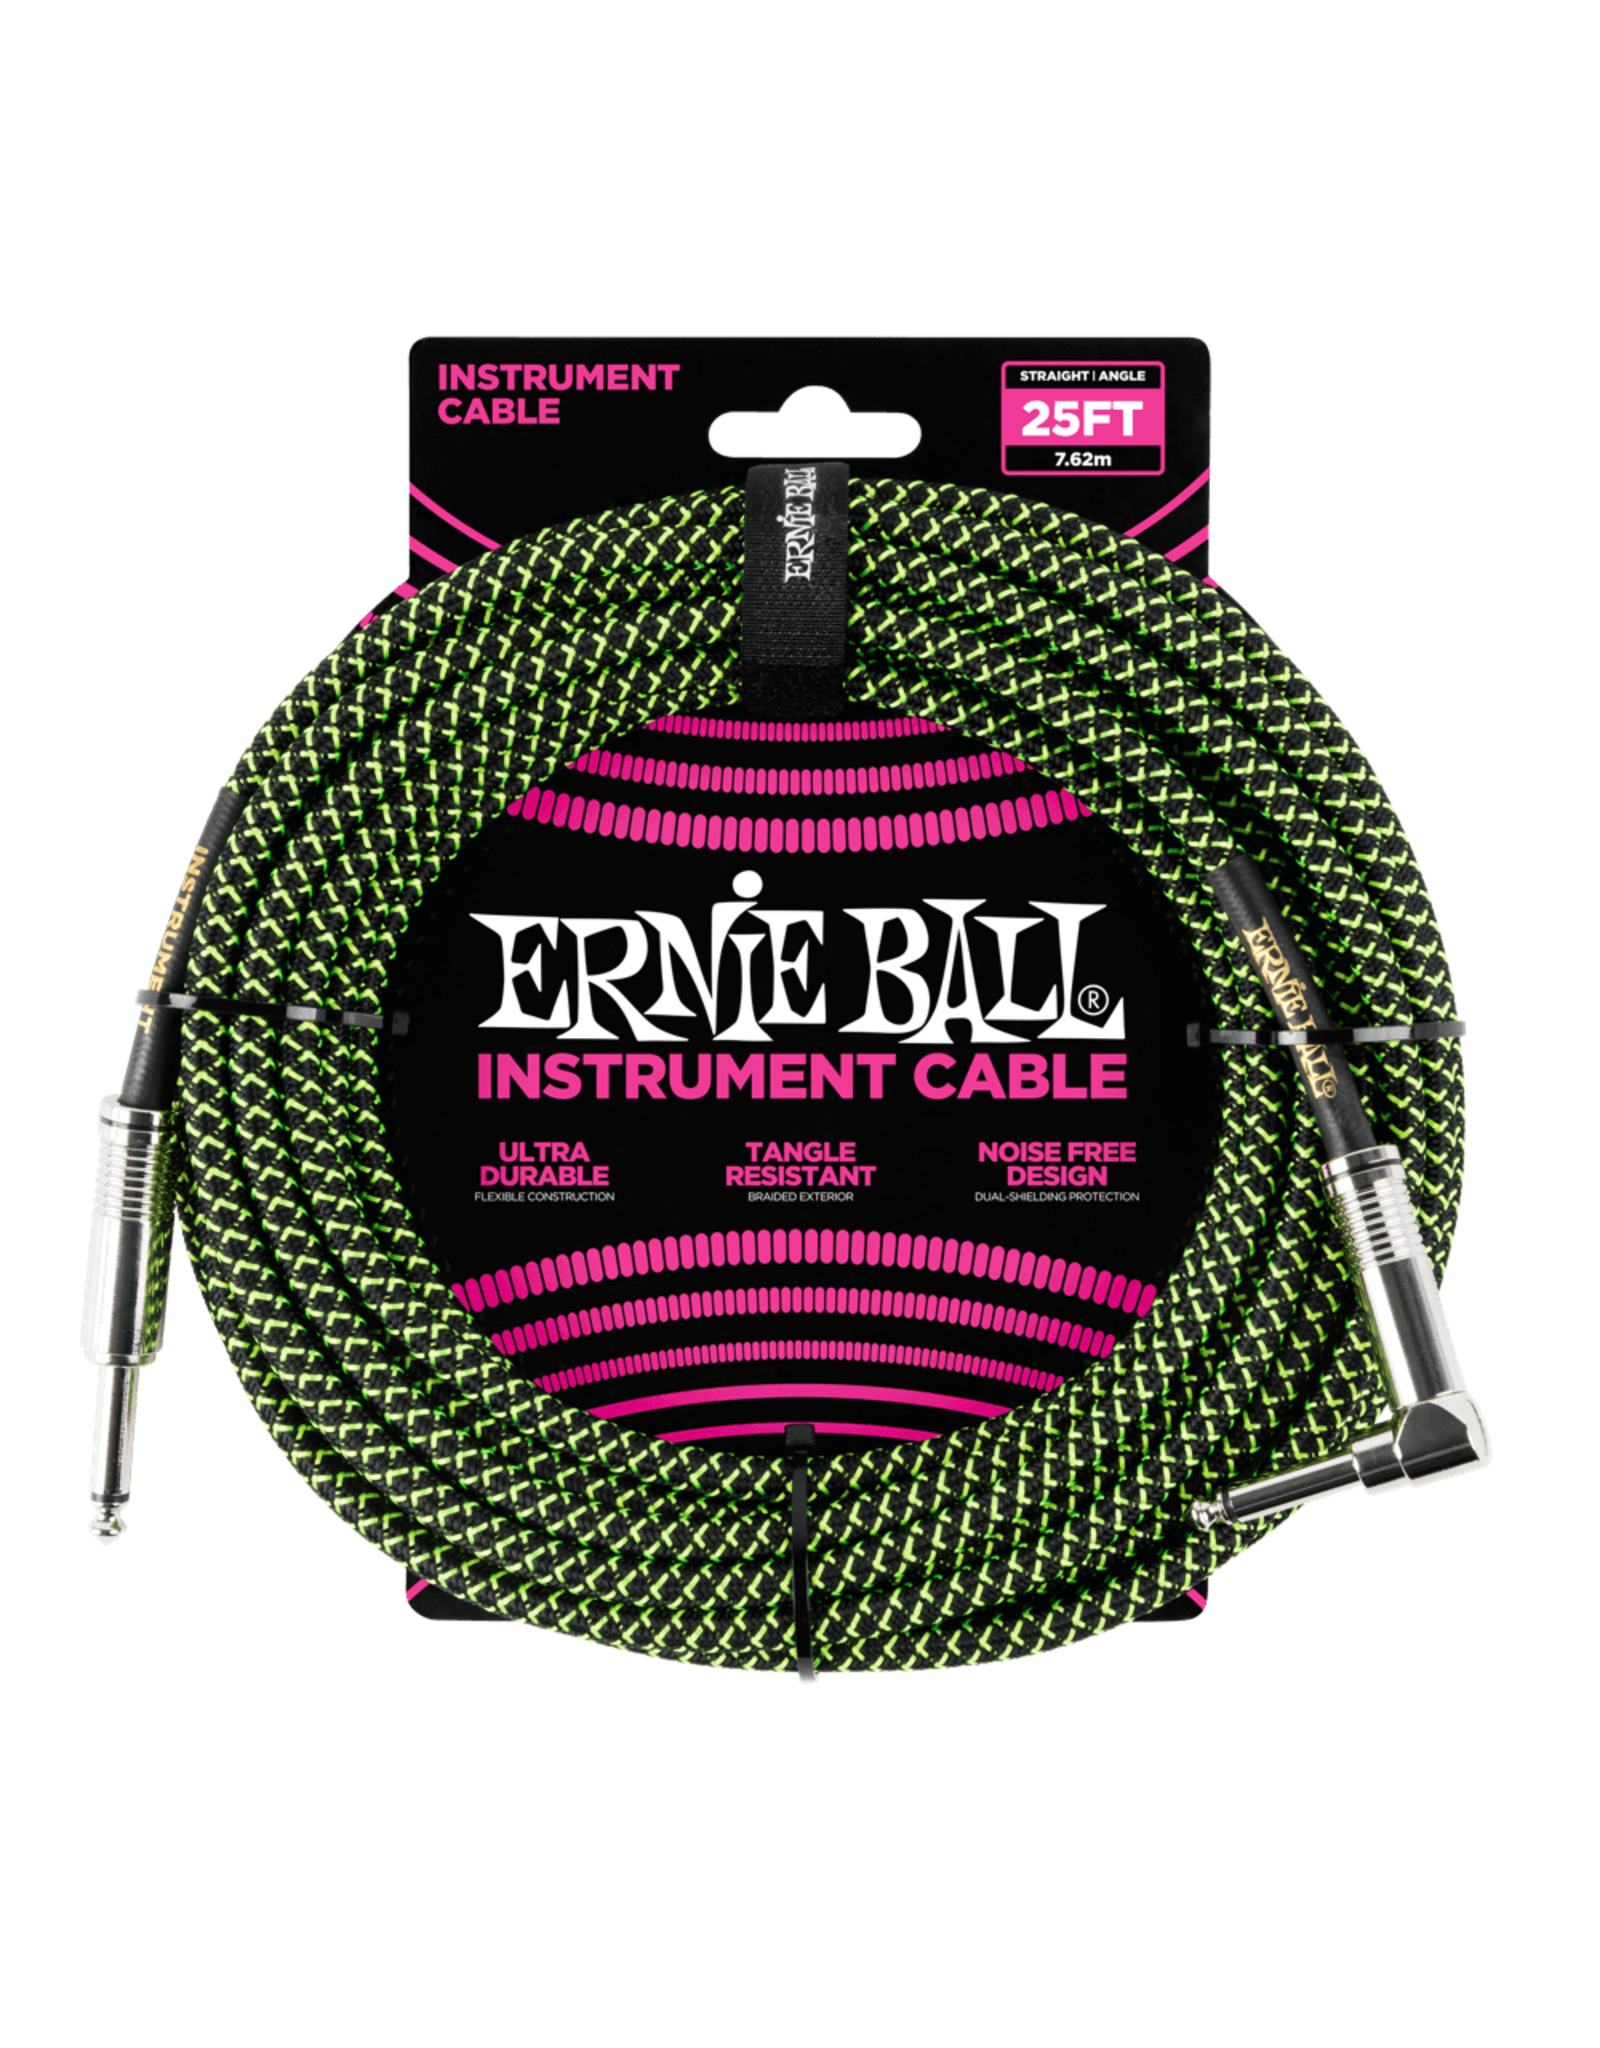 Ernie Ball Ernie Ball 6066 25' Straight/Angle Braided Black/Green Cable